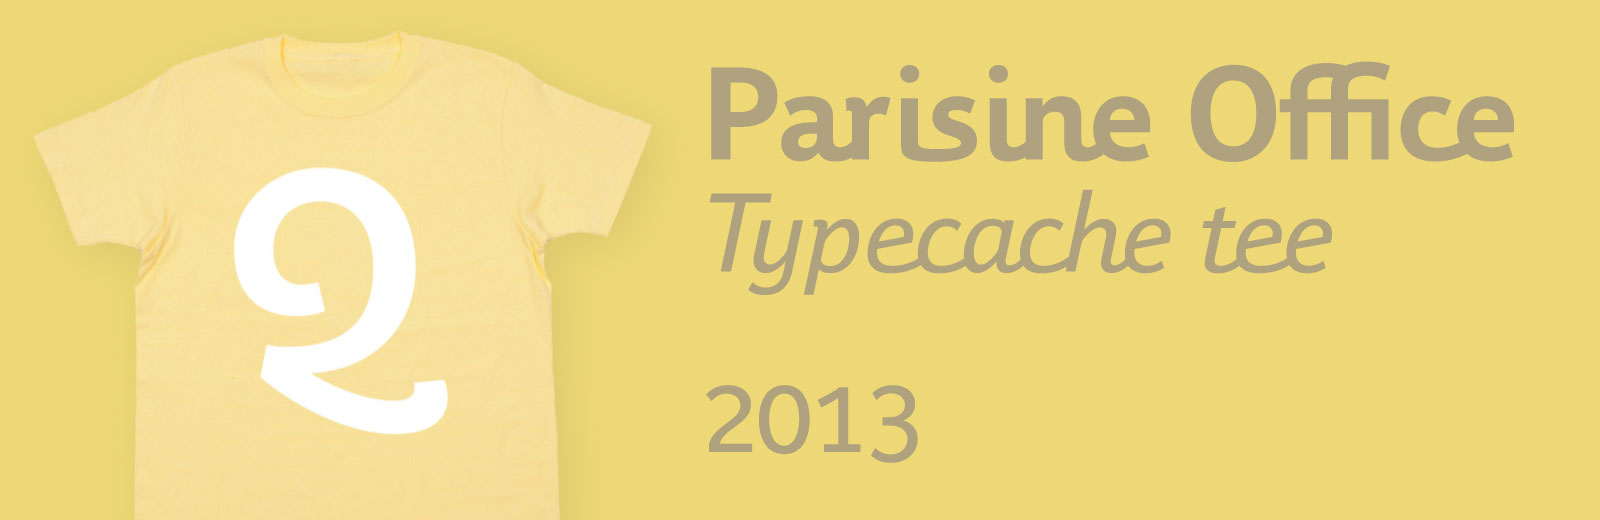 Typecache Tee 2013:Parisine Office Q